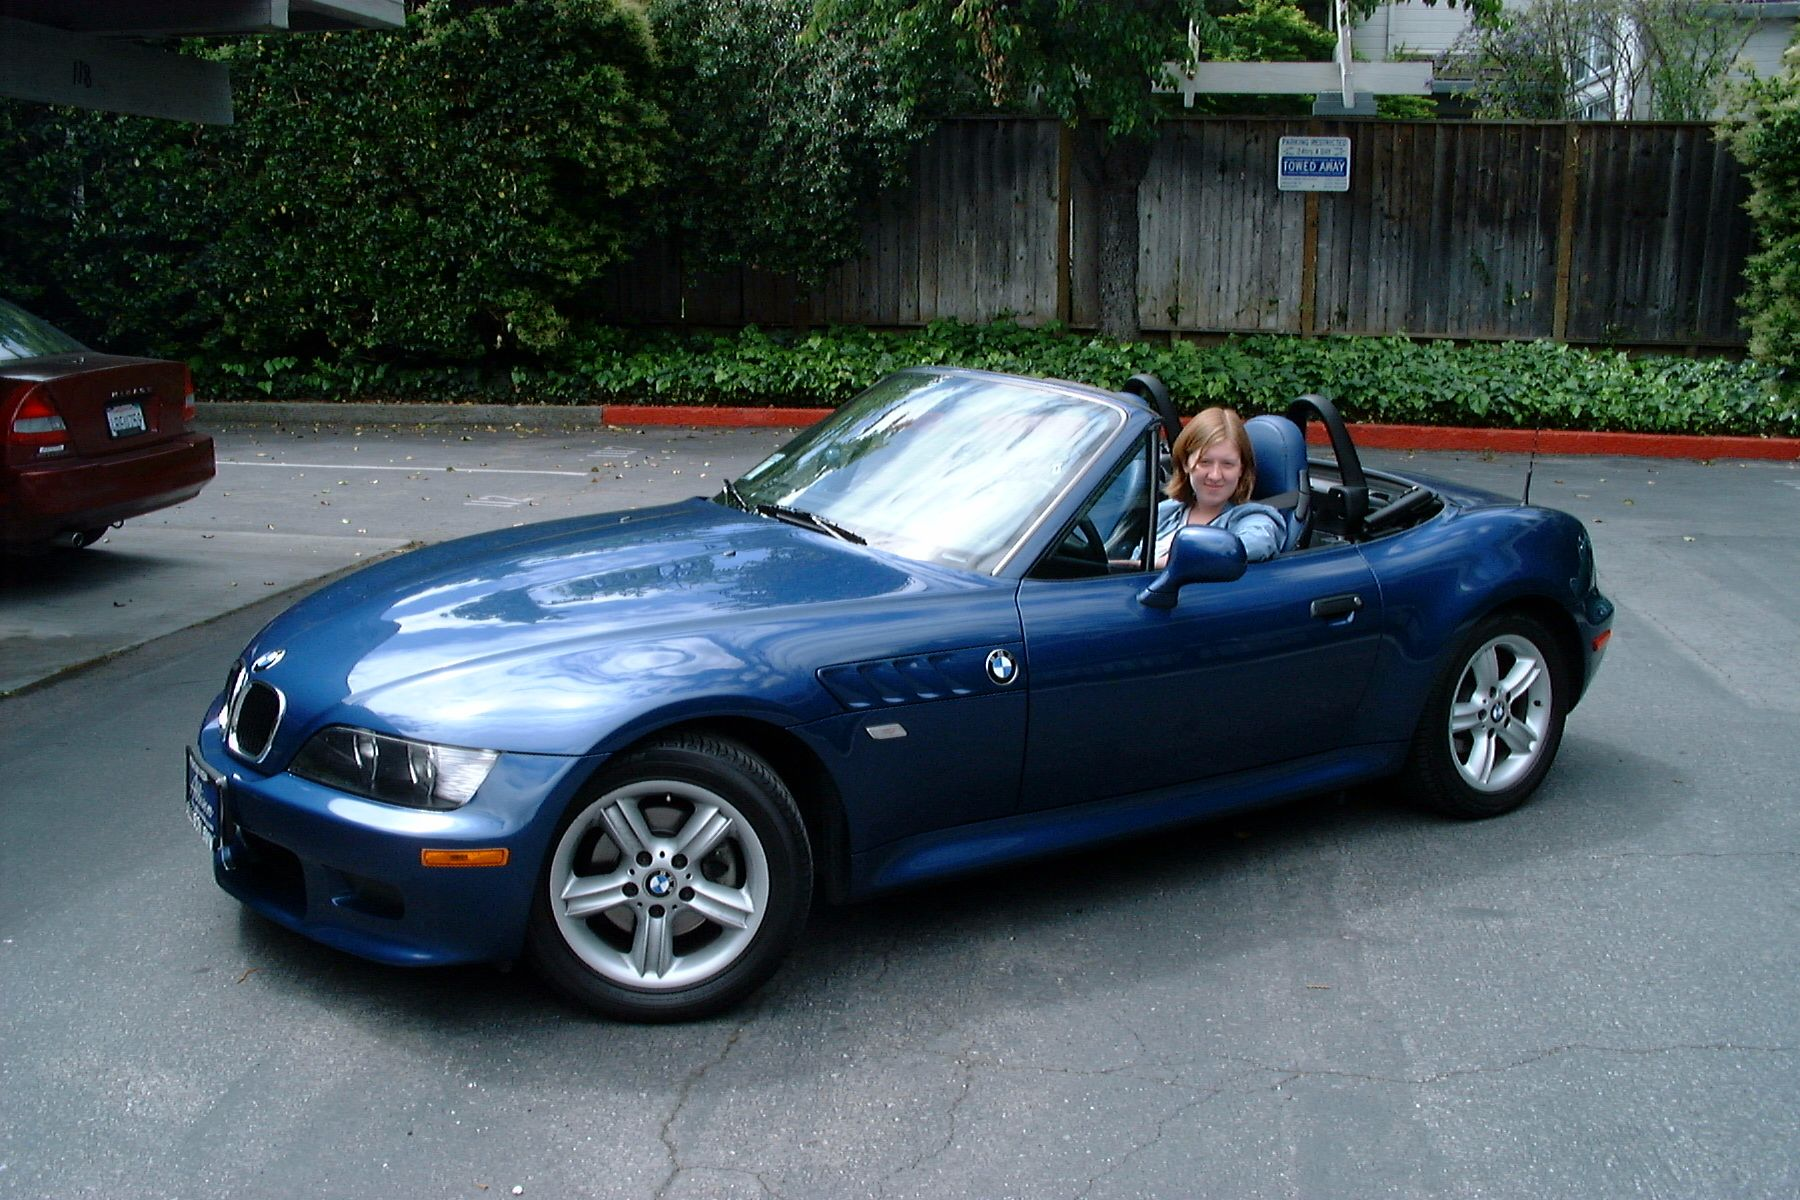 Bmw Z3 Car Pictures Hd Bmw Pinterest Bmw Z3 Bmw And